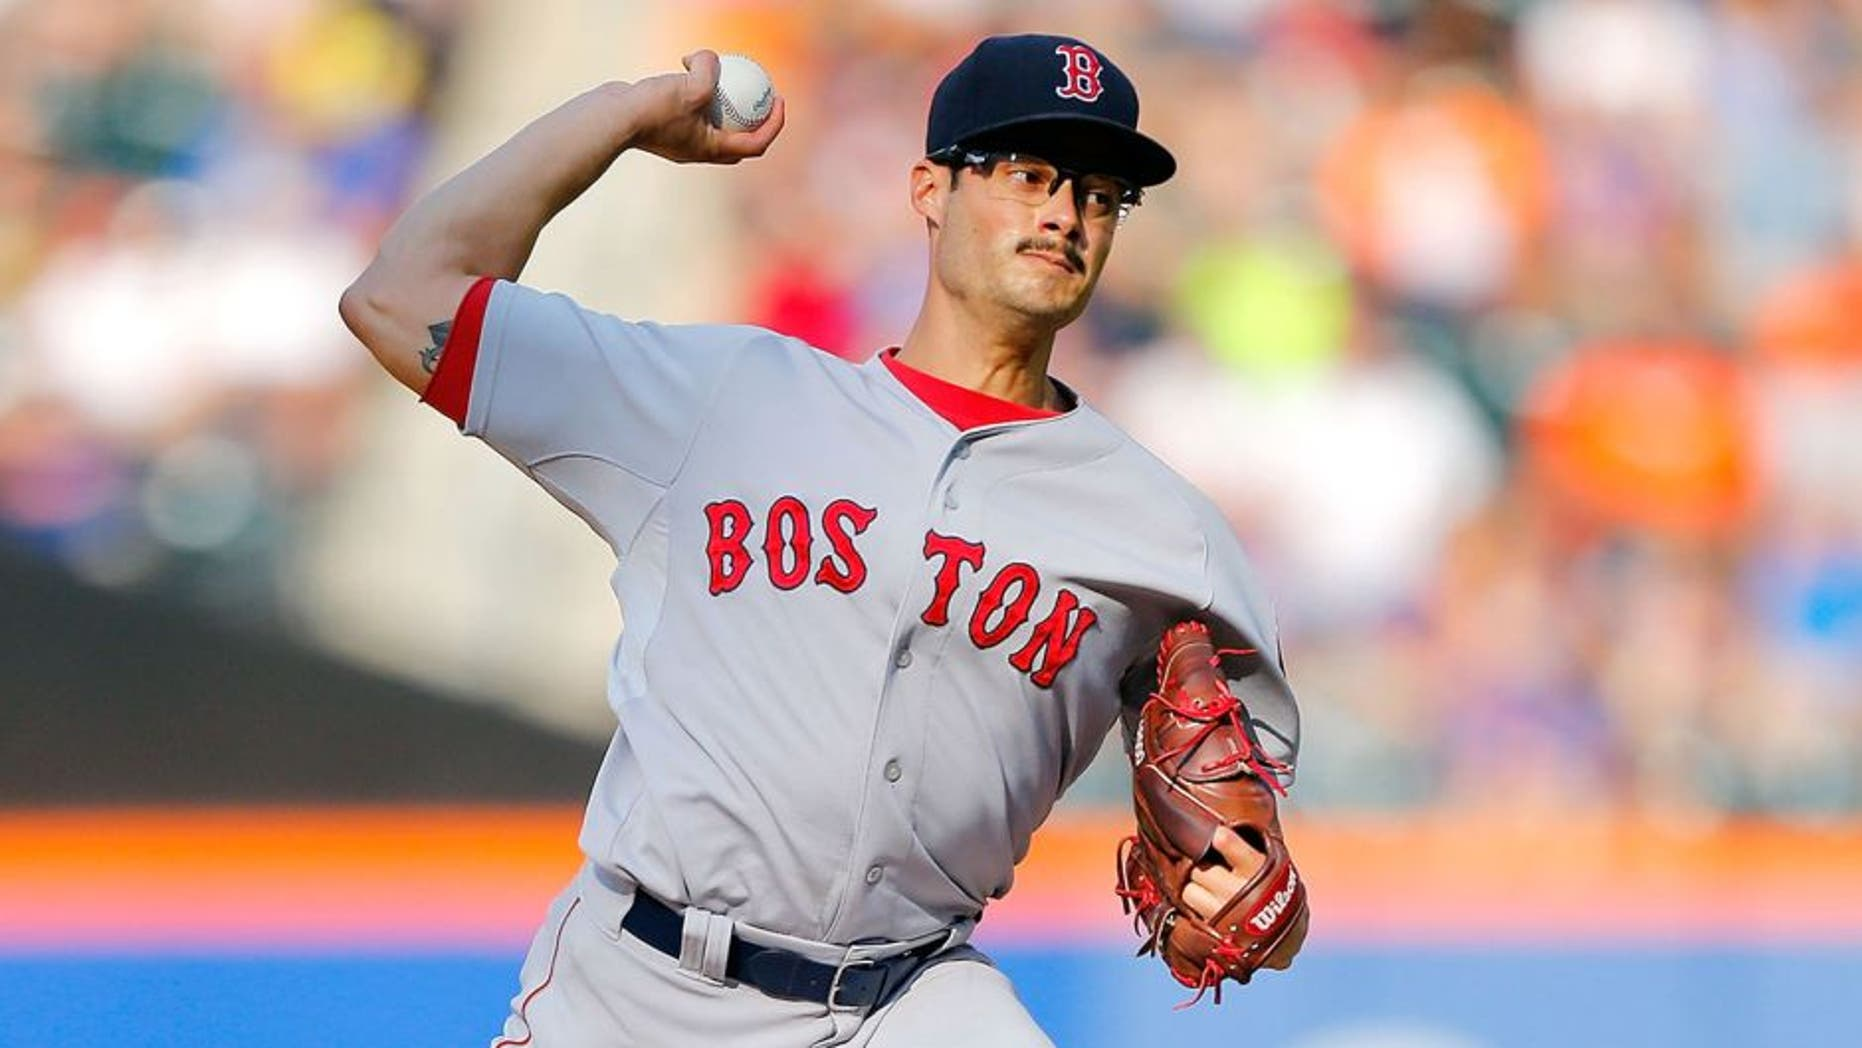 NEW YORK, NY - AUGUST 29: Joe Kelly #56 of the Boston Red Sox pitches in the third inning against the New York Mets at Citi Field on August 29, 2015 in the Flushing neighborhood of the Queens borough of New York City. (Photo by Jim McIsaac/Getty Images)